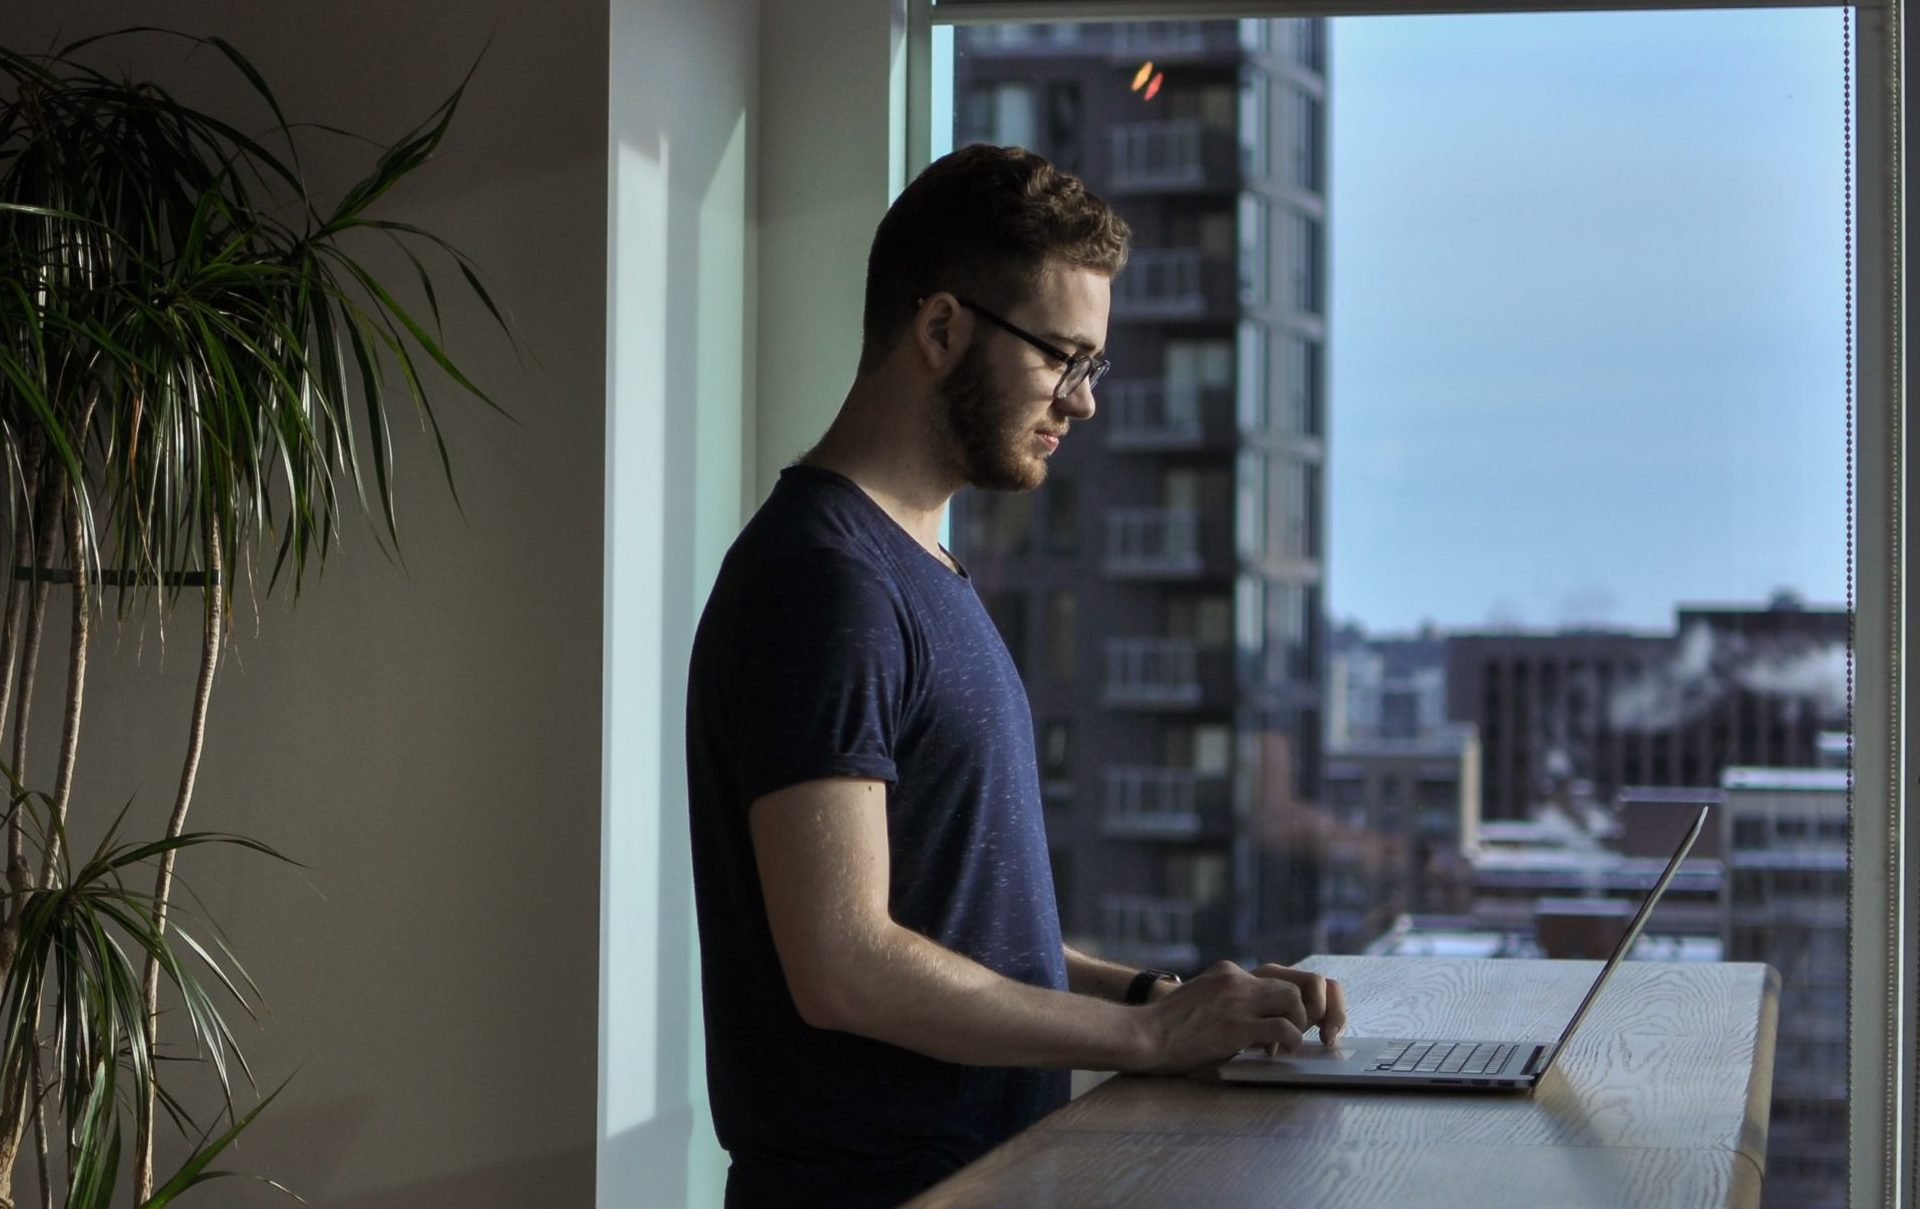 man working on laptop in front of window looking out into the city